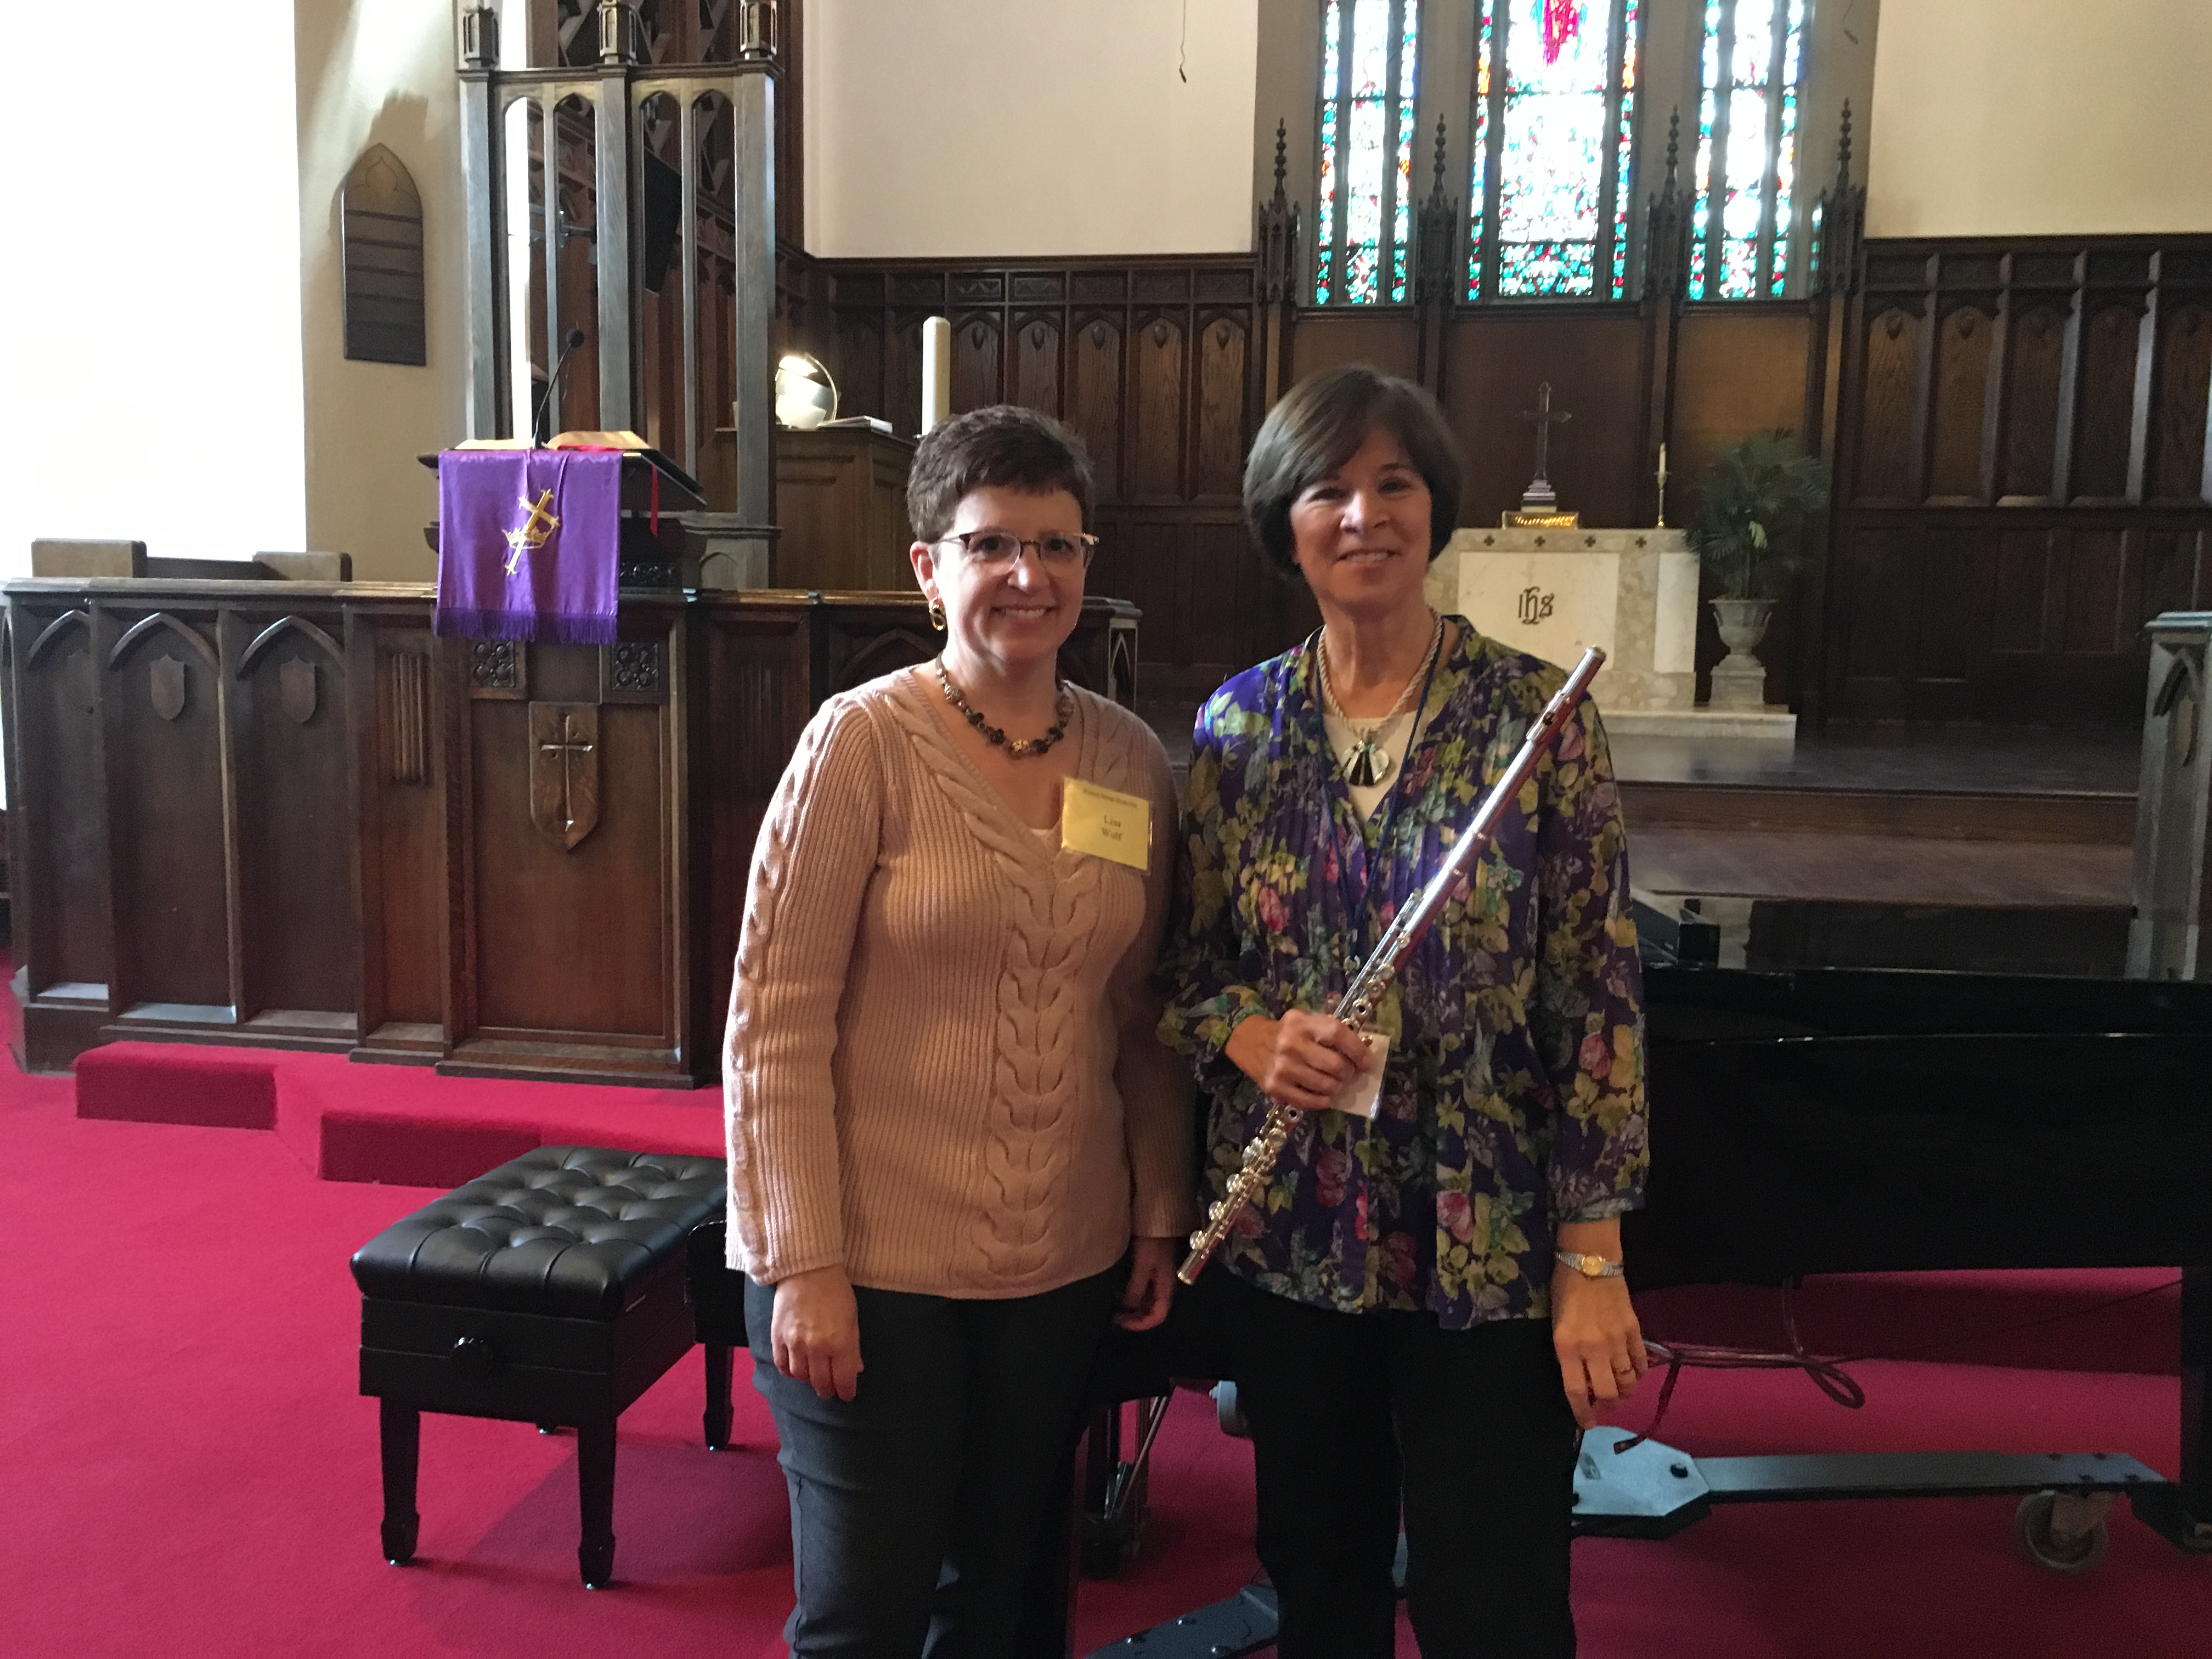 Karin Ursin with Lisa Wolf, March 14, 2018